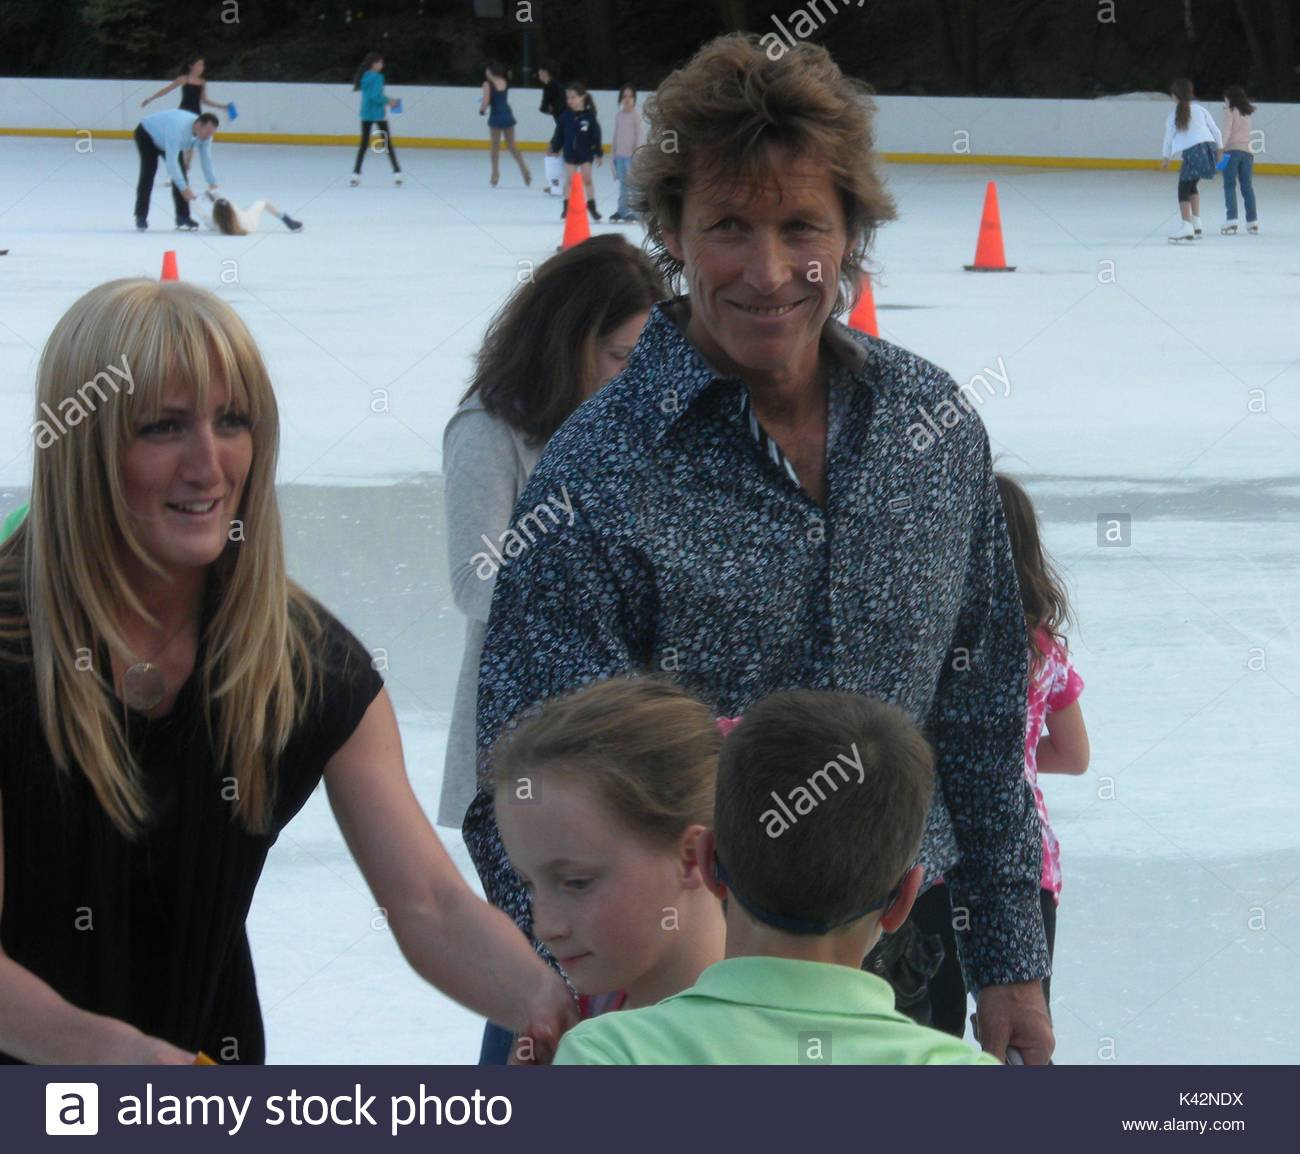 Ron duguay after the skating with the stars sws ceremony stock after the skating with the stars sws ceremony celebrities meet and greet at the trumps wollman rink located in central park nyc m4hsunfo